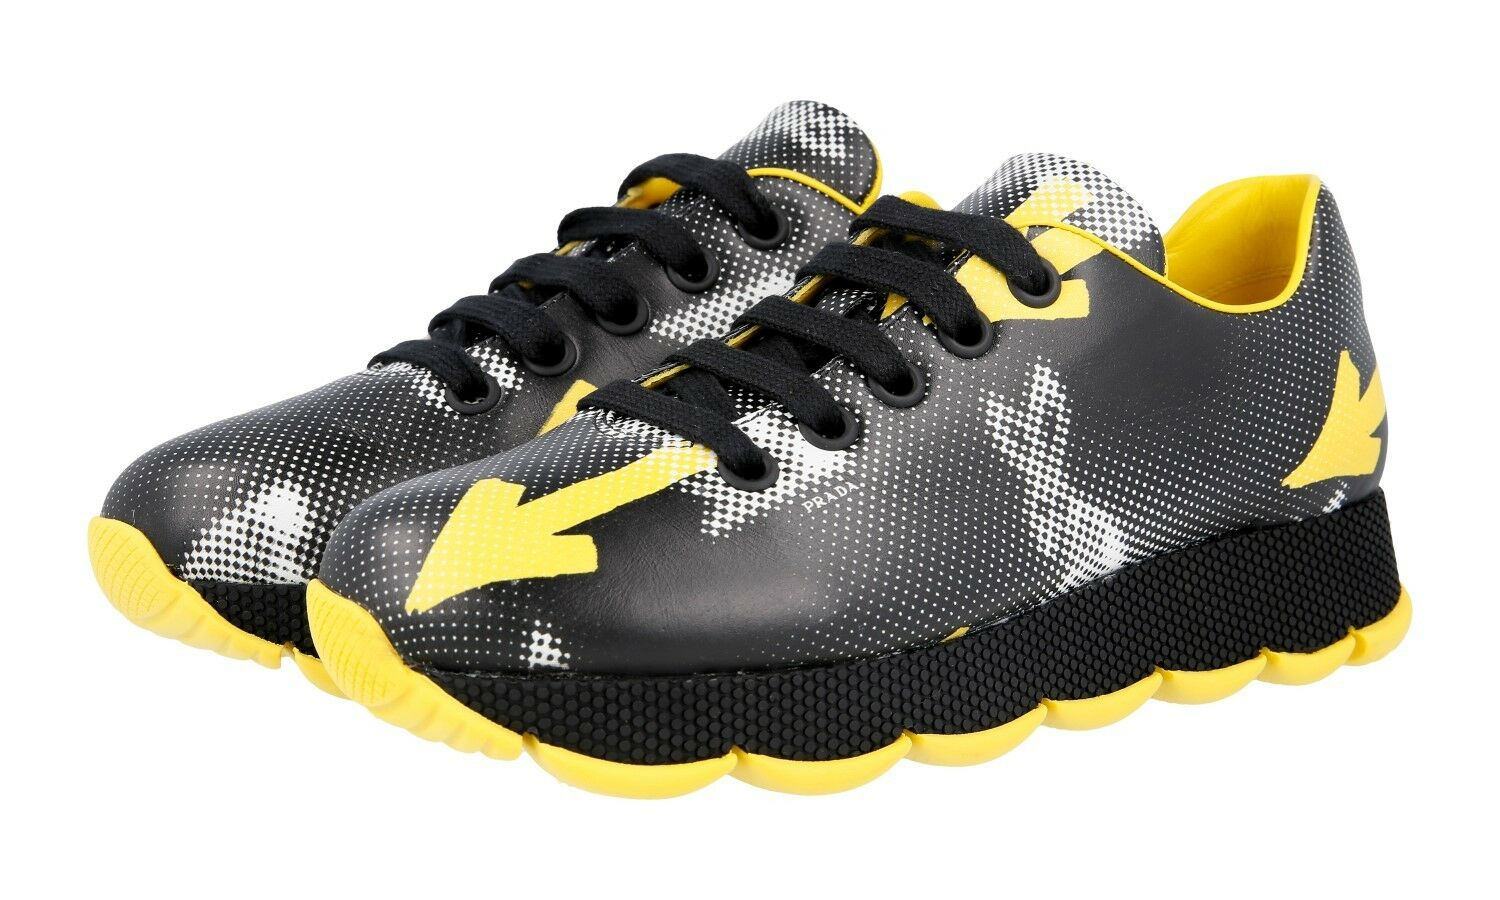 AUTH LUXURY PRADA SNEAKERS SHOES 1E654G BLACK YELLOW NEW US 7 EU 37 37,5